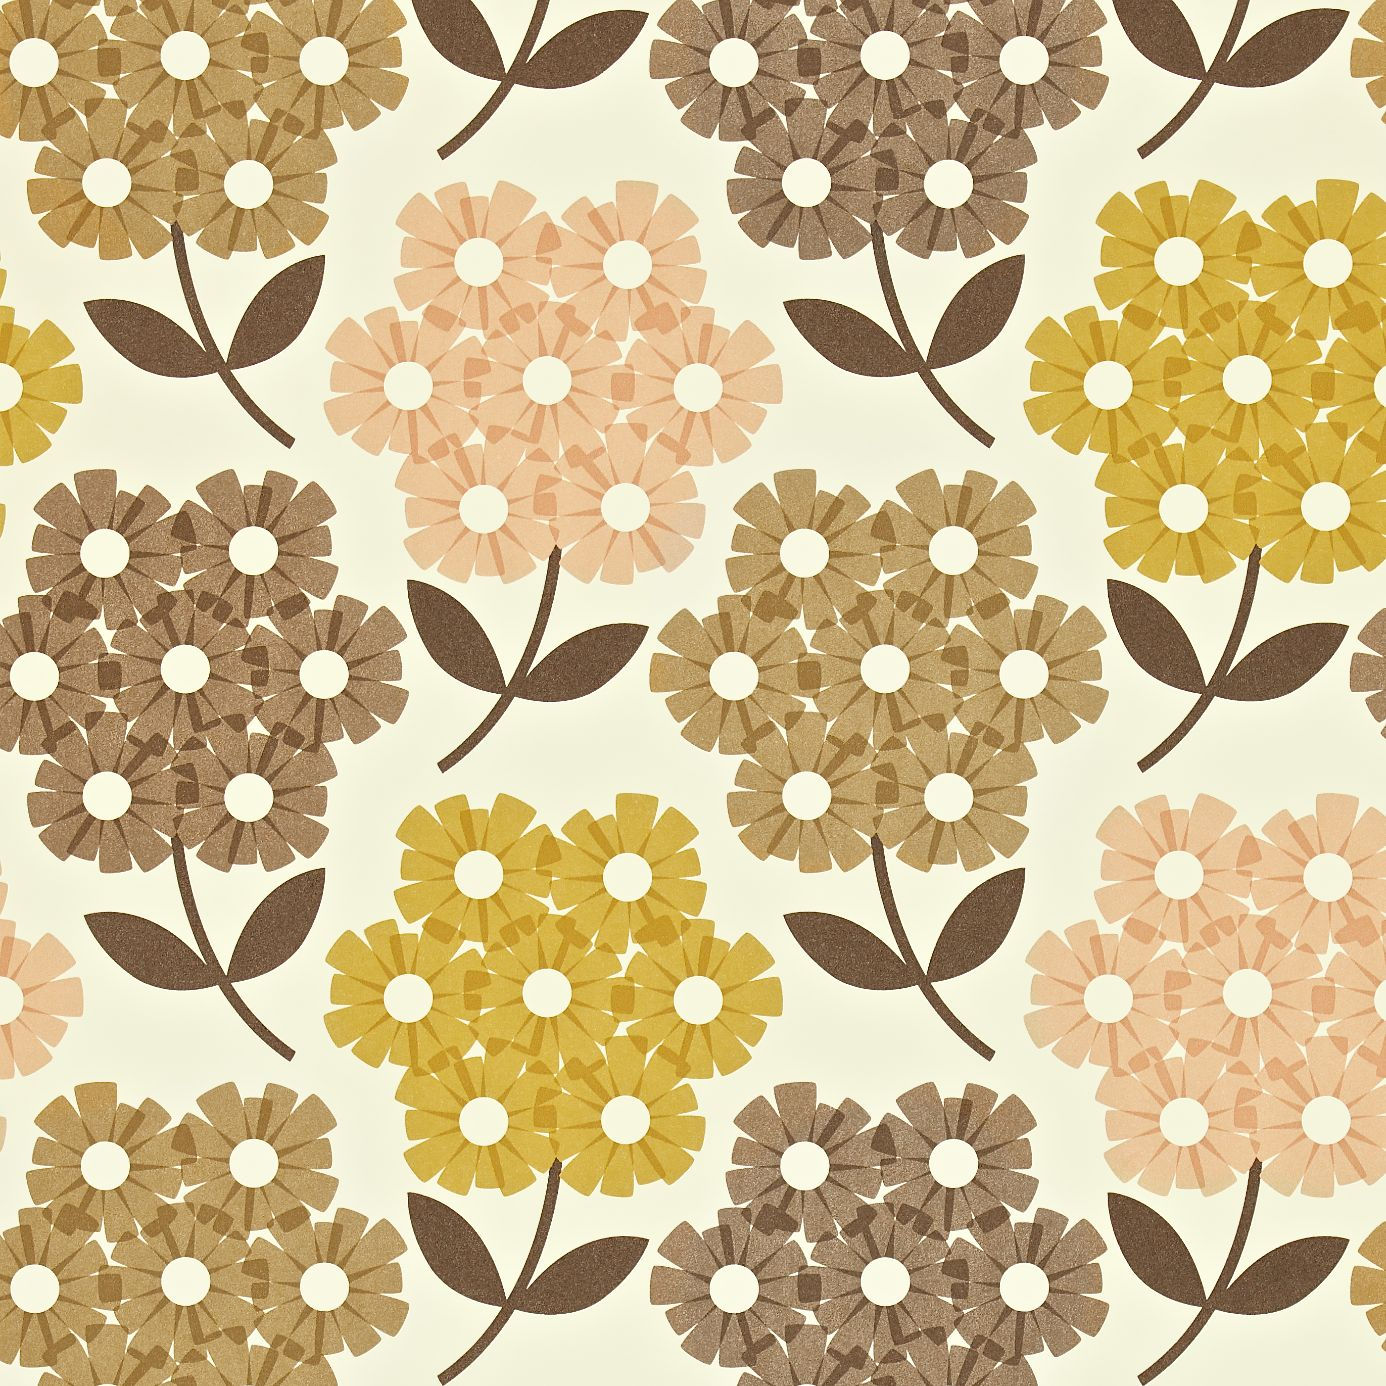 Harlequin-Details-of-Fabrics-and-Wallcovering-designs-Orla-Kiely-wallpaper-wp4807137